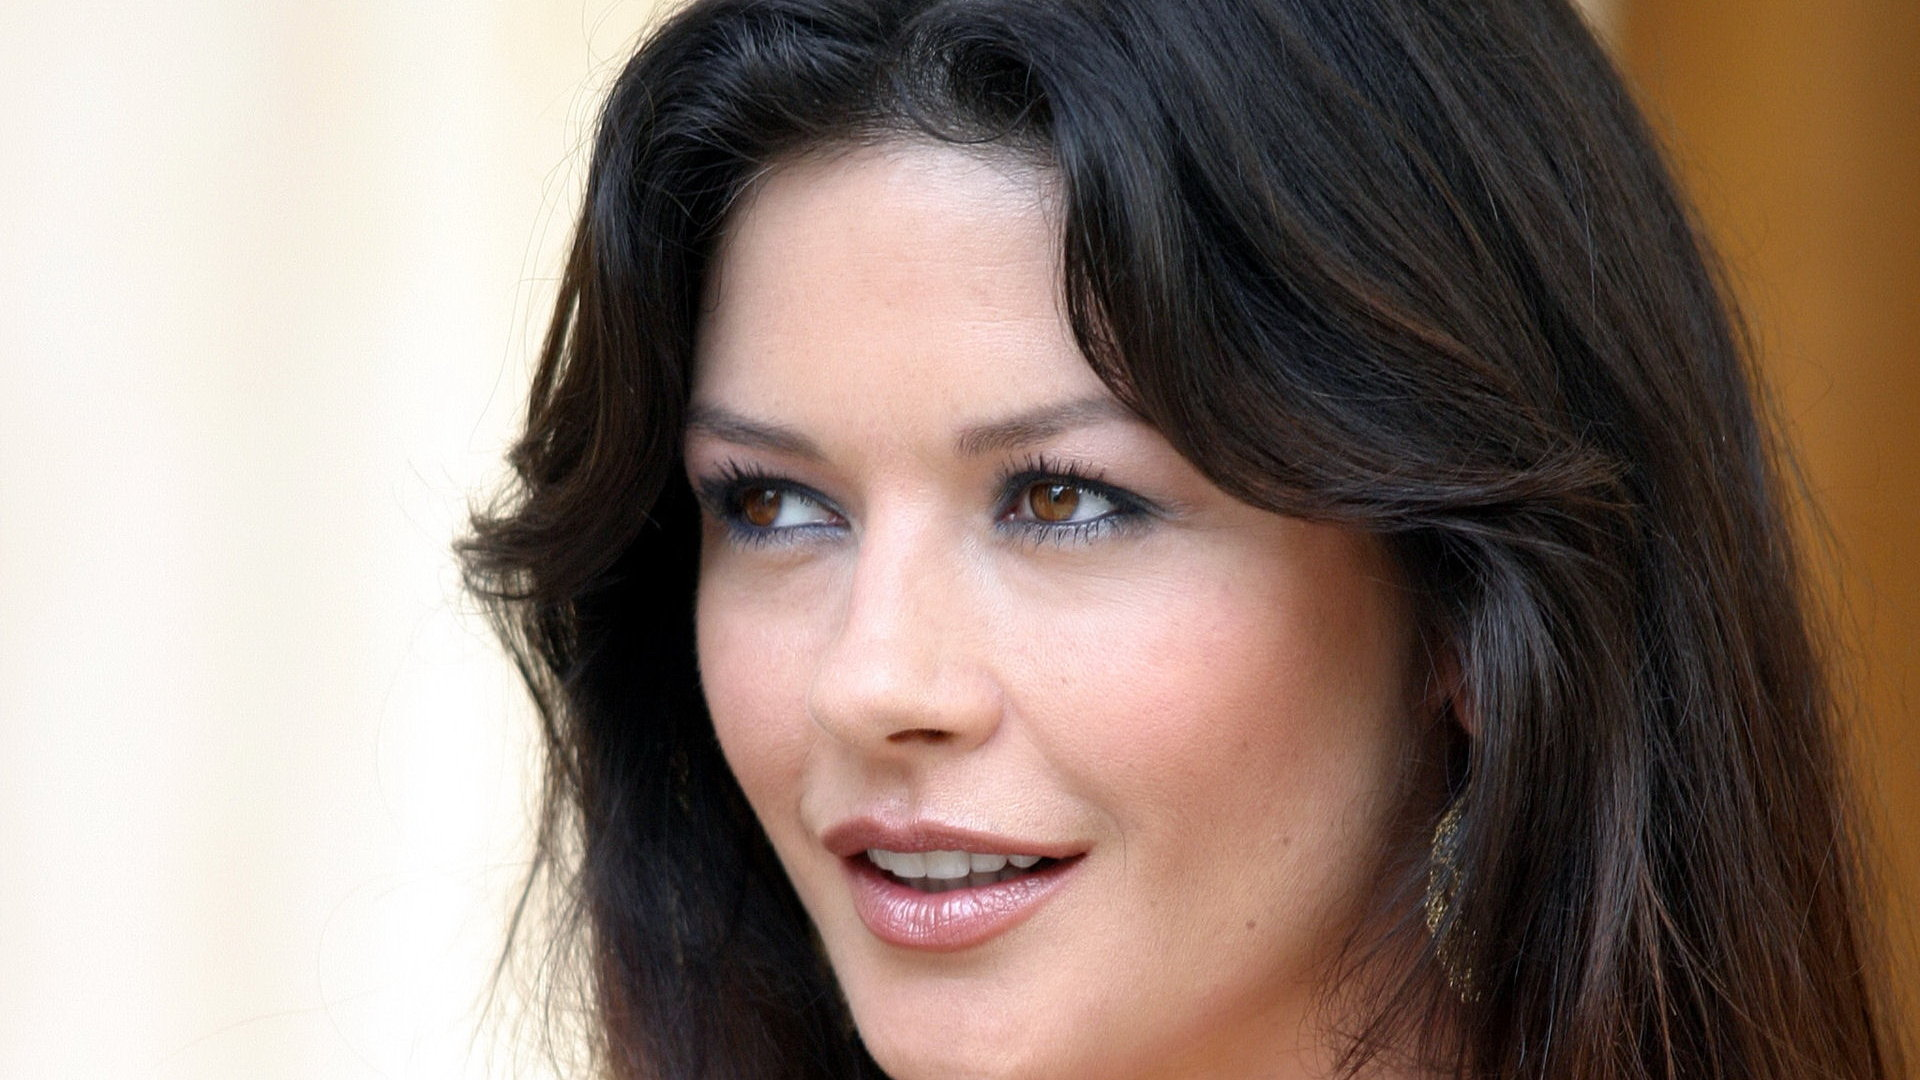 Download full hd 1920x1080 Catherine Zeta-Jones computer wallpaper ID:54651 for free